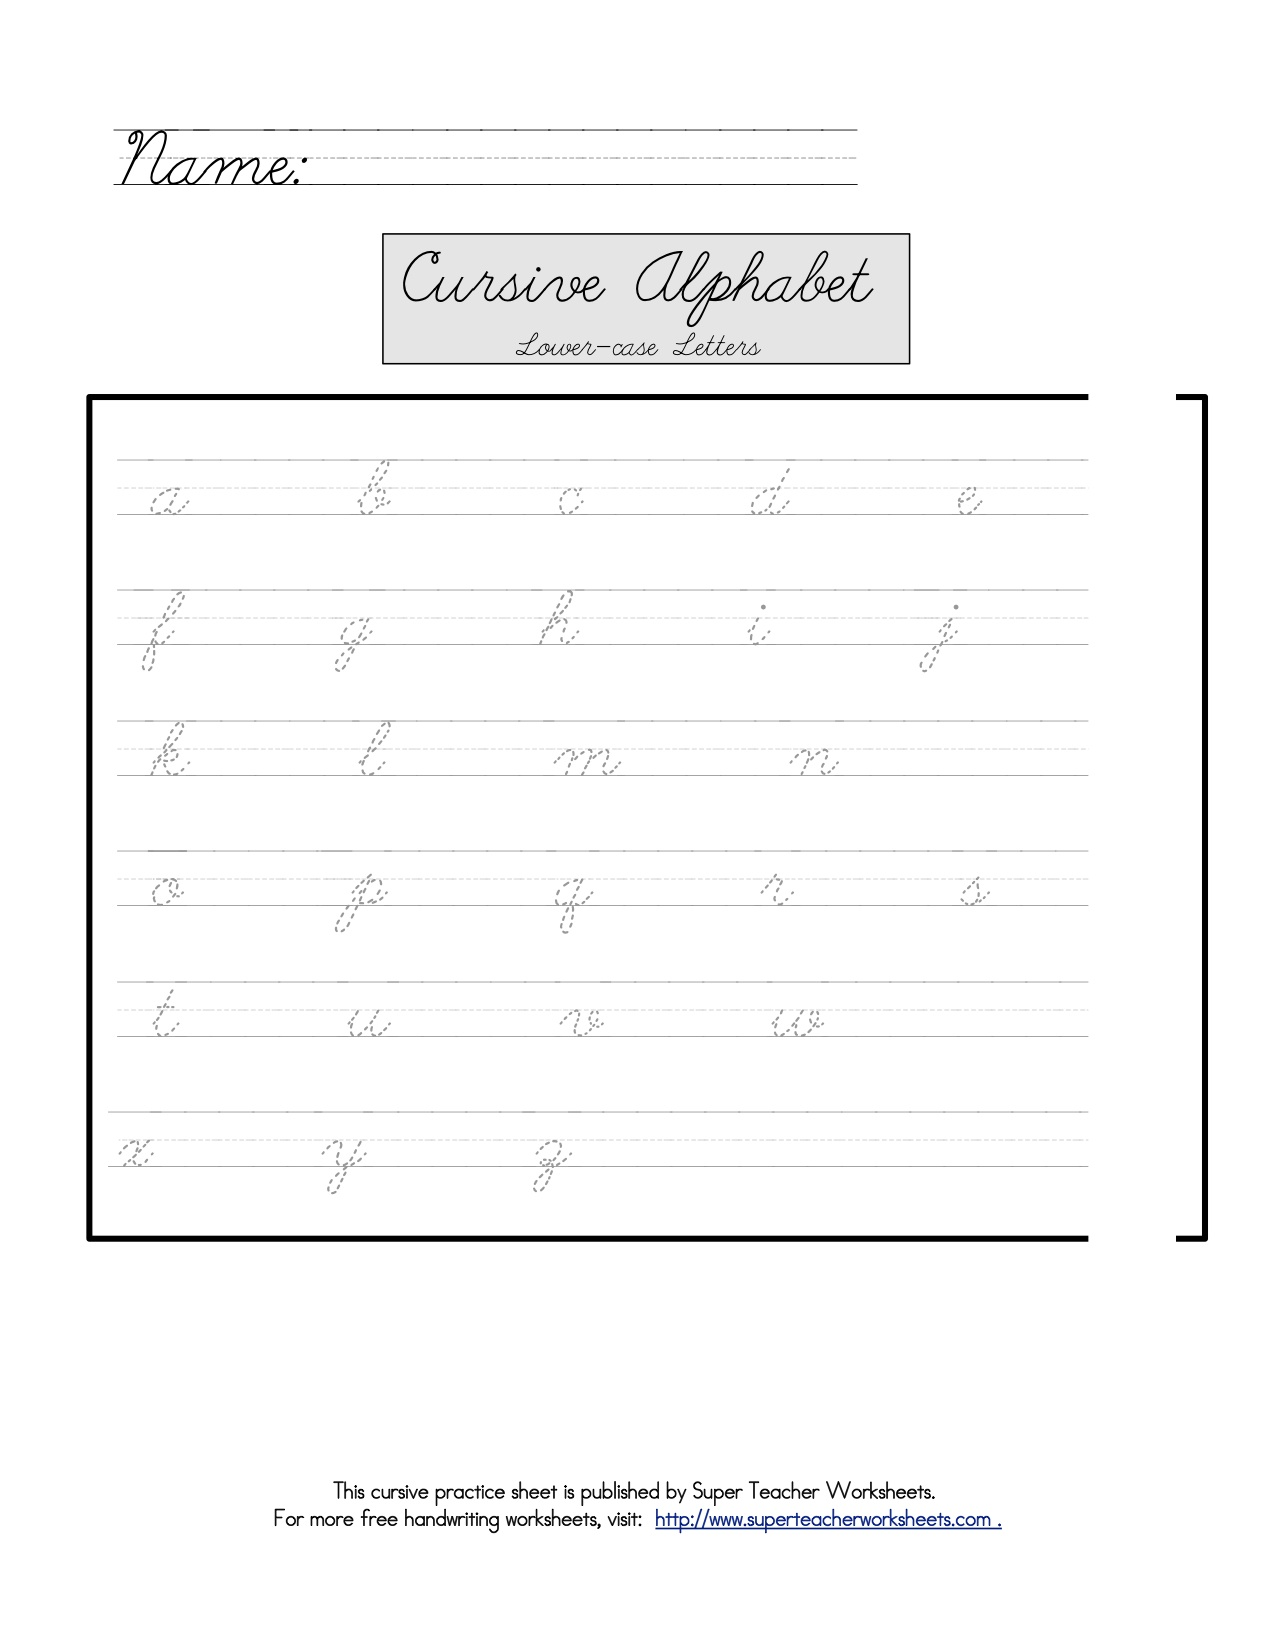 super teacher worksheets free lean into it tools for teaching tots cursive if their schools. Black Bedroom Furniture Sets. Home Design Ideas